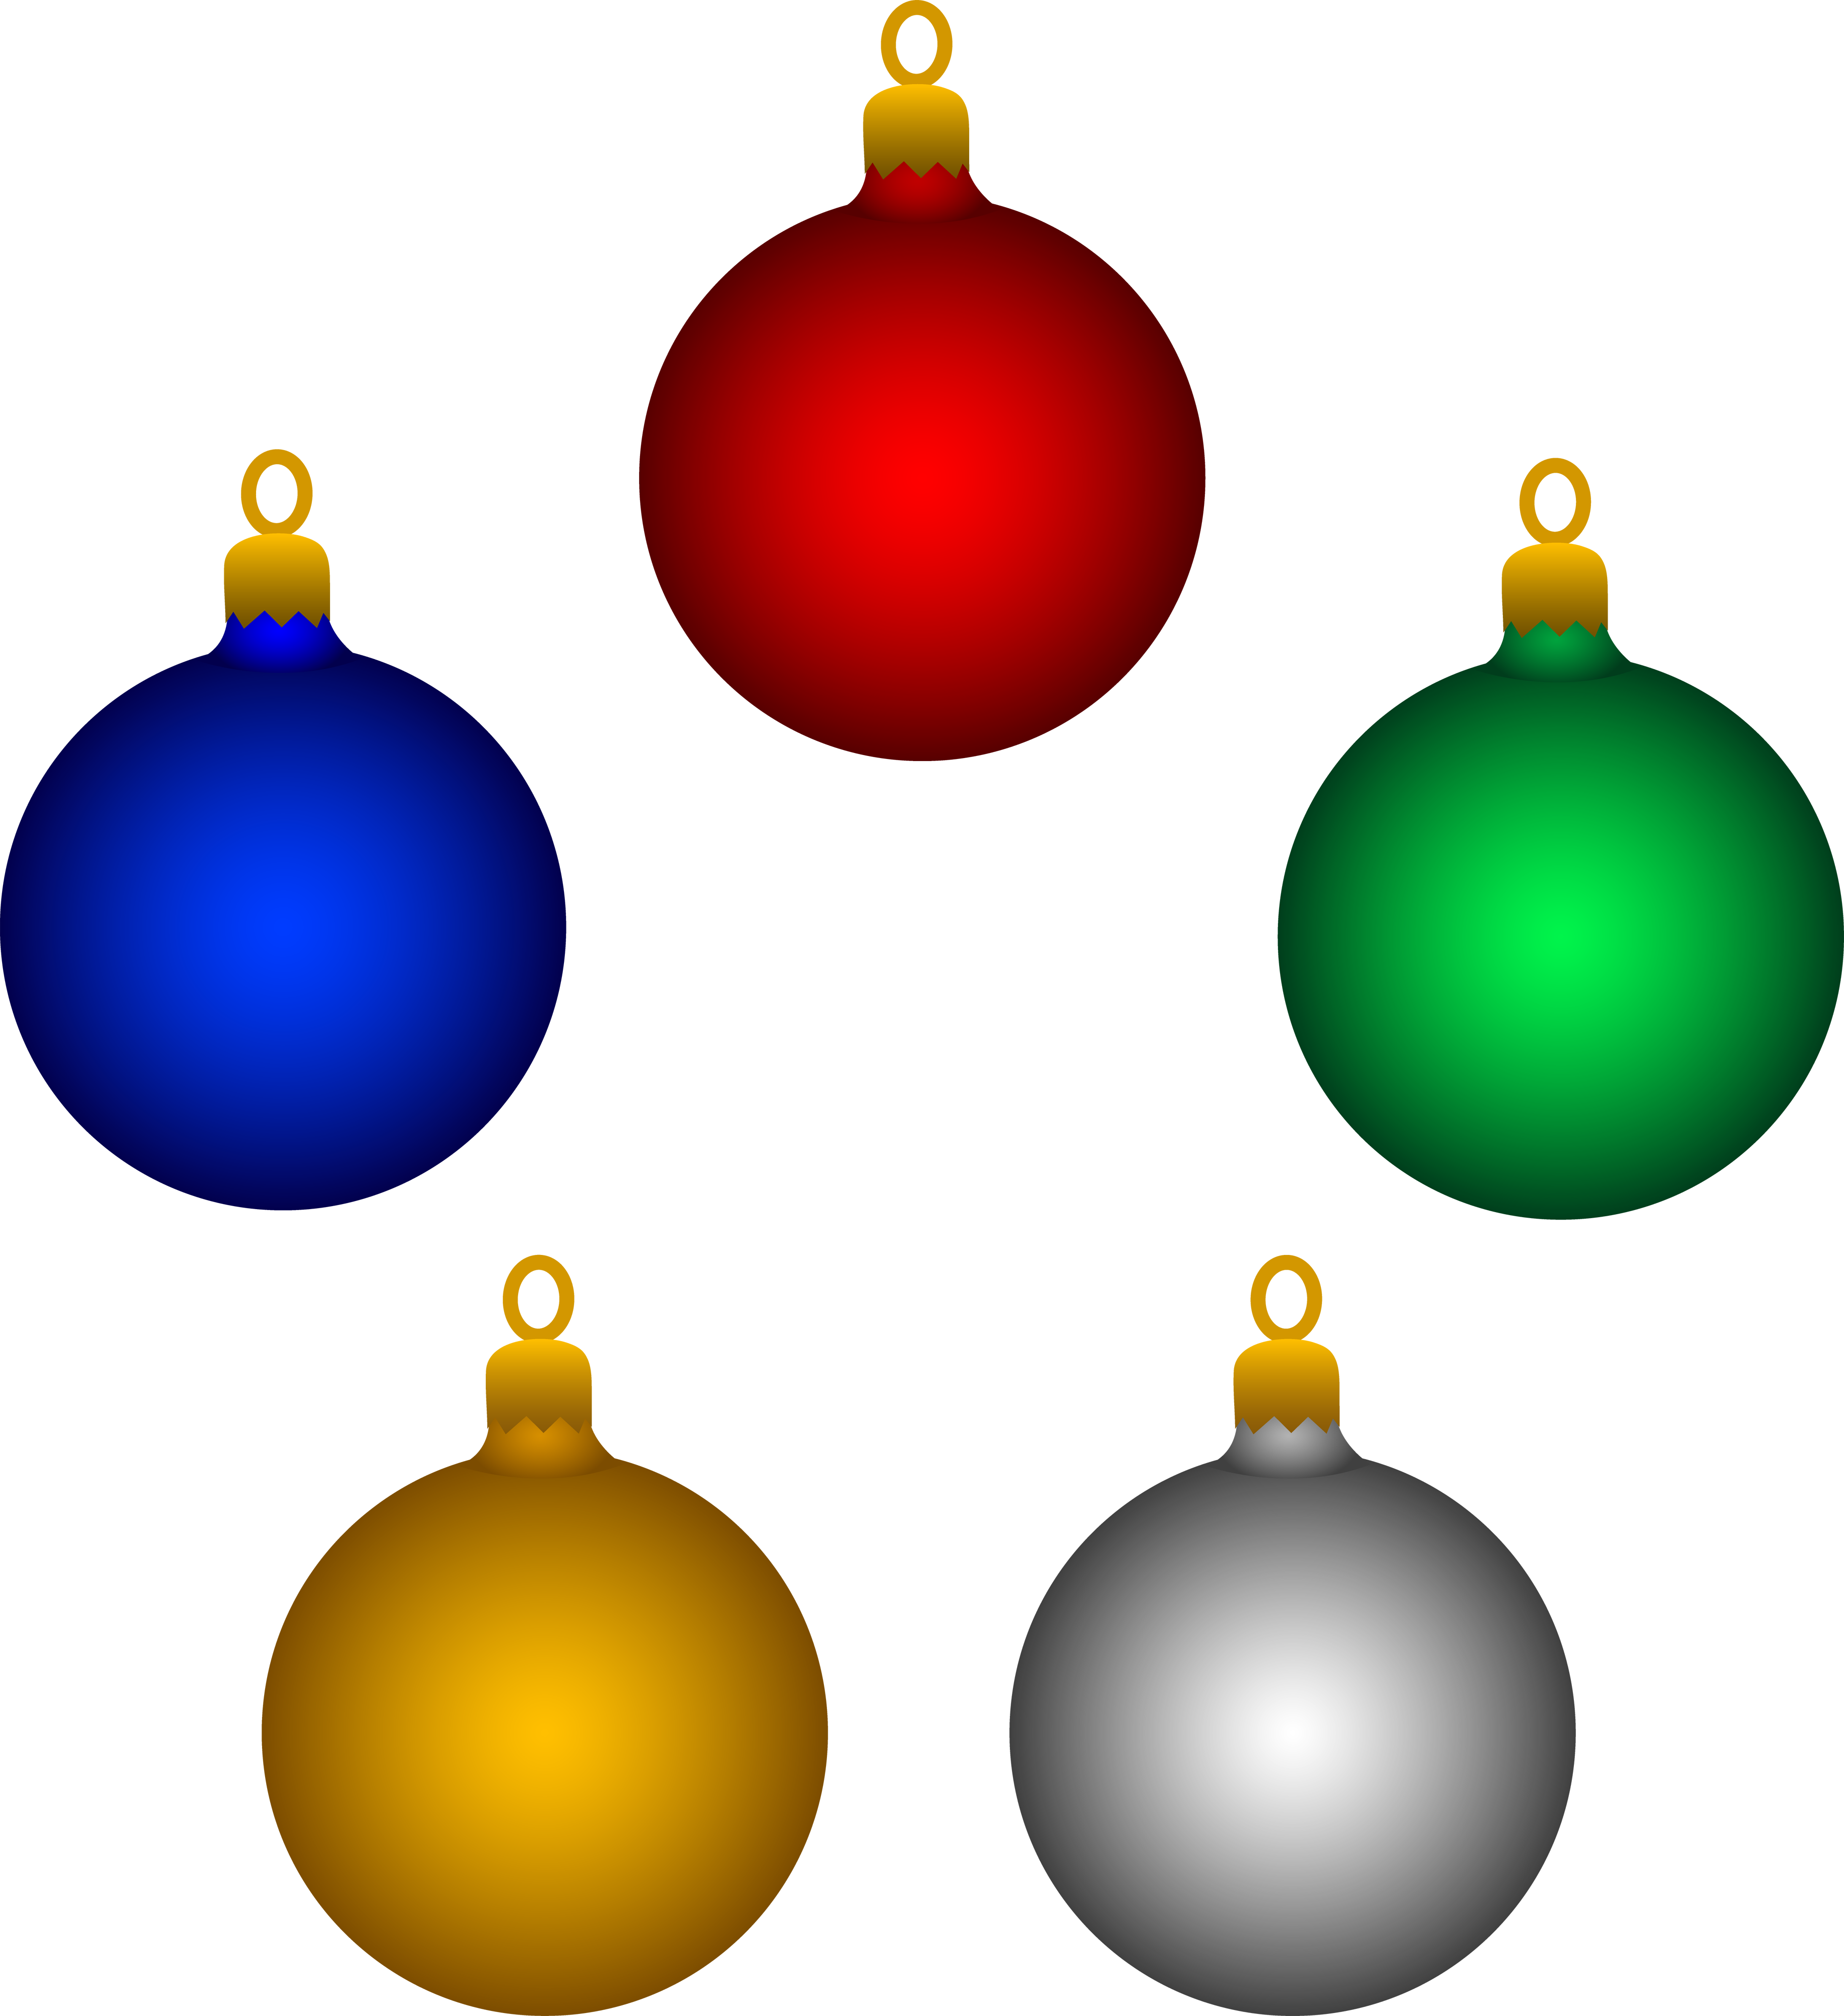 Clipart Christmas Decorations.